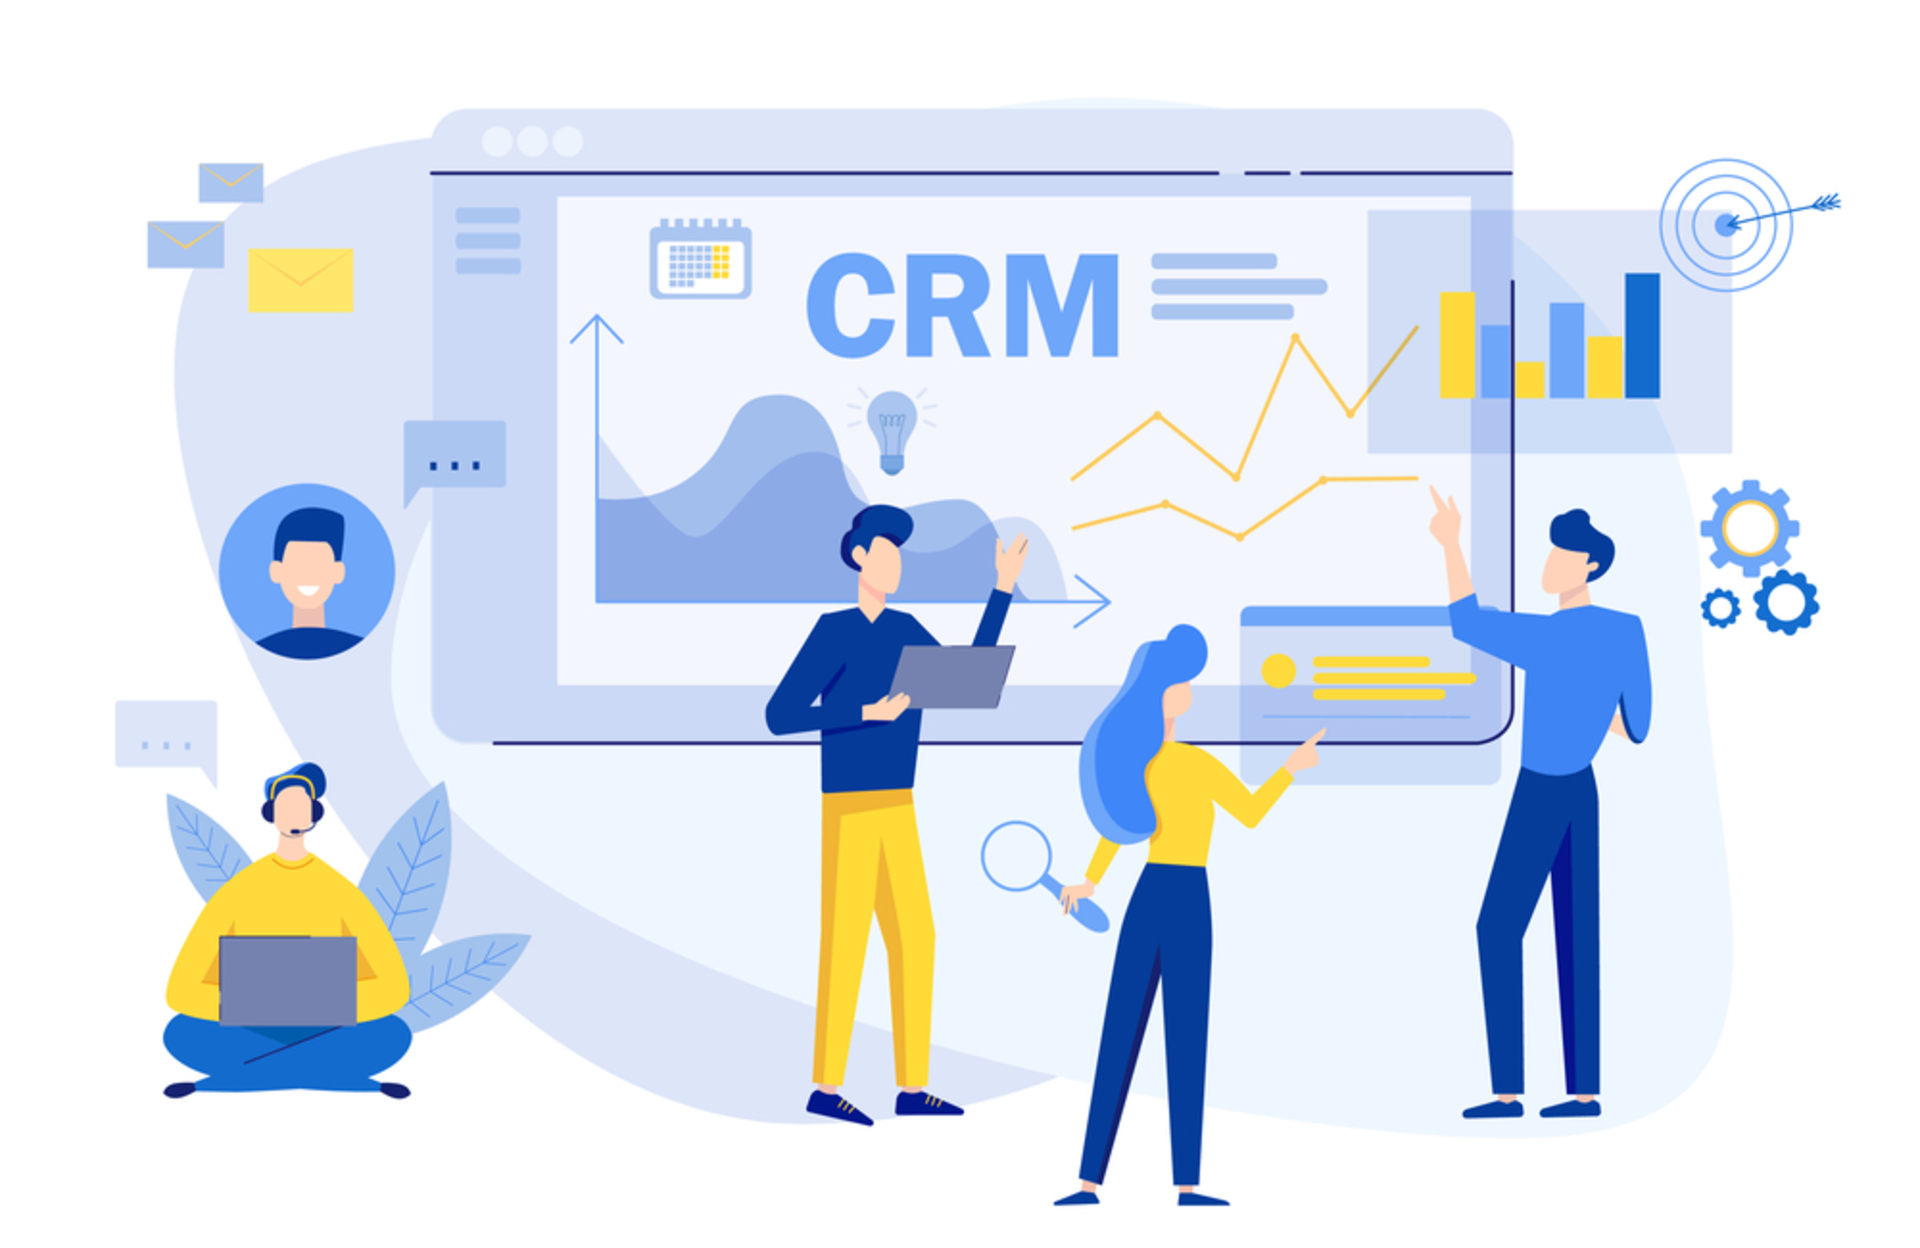 6 Features of a Great CRM System image